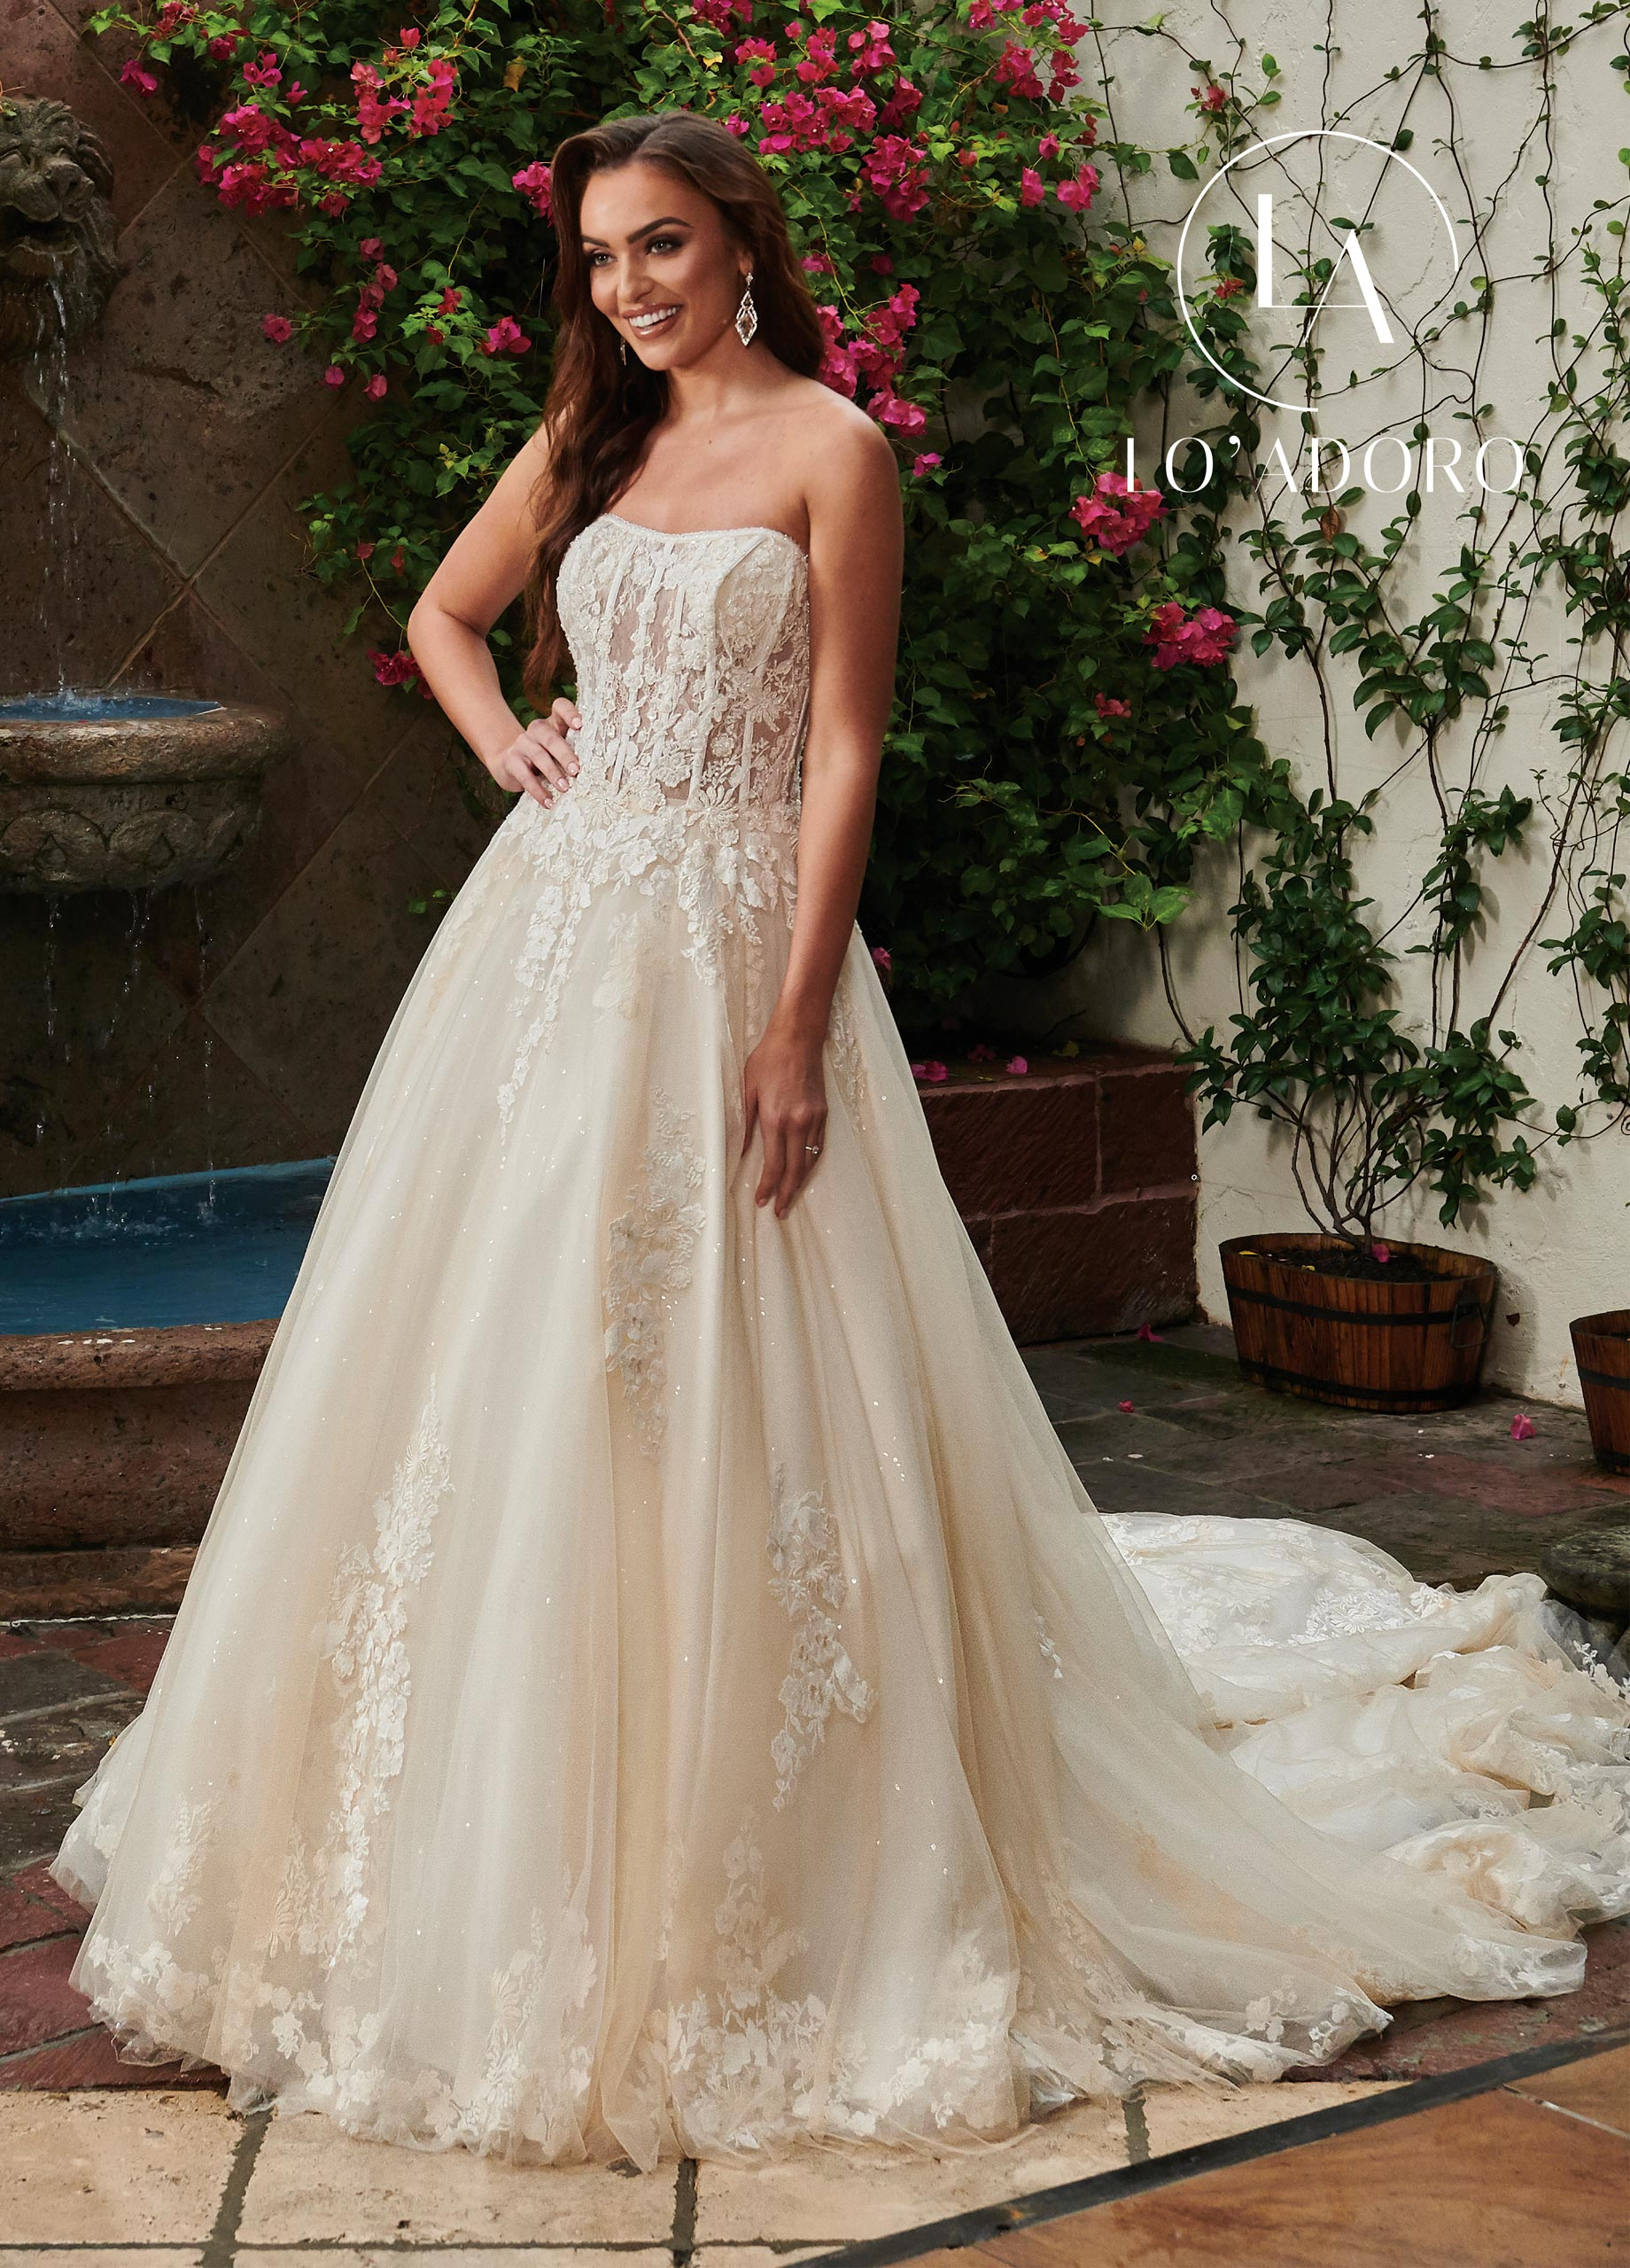 Strapless Ball Gowns Lo' Adoro Bridal in White Color